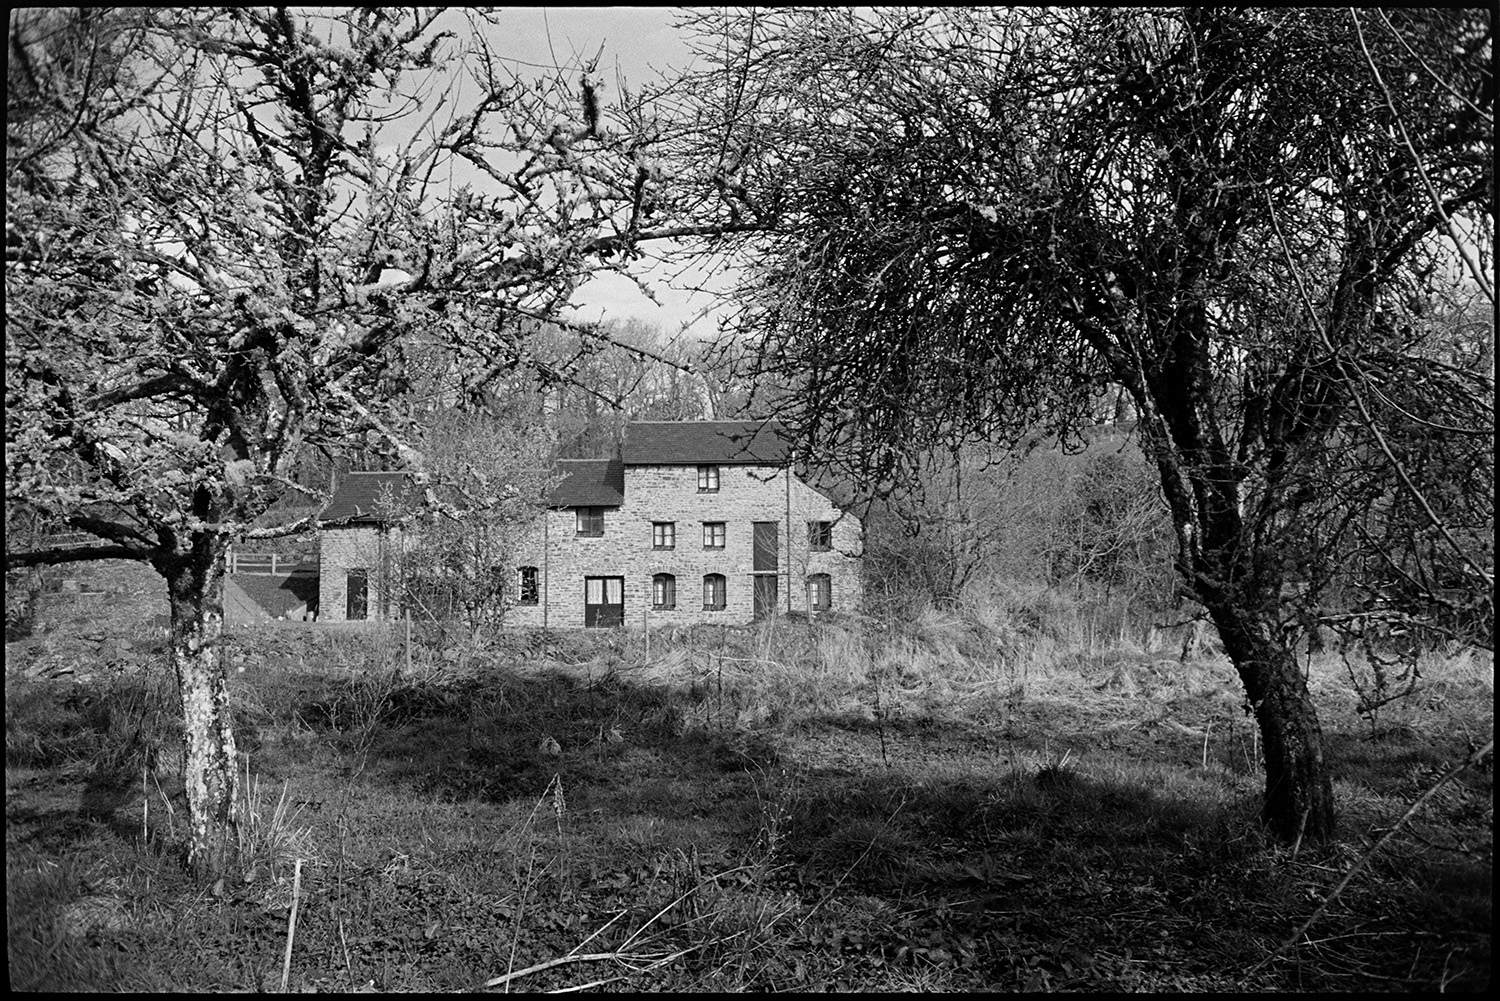 Converted mill. <br /> [A mill which has been converted into a residence in Chulmleigh. The mill is viewed between two trees in the foreground.]